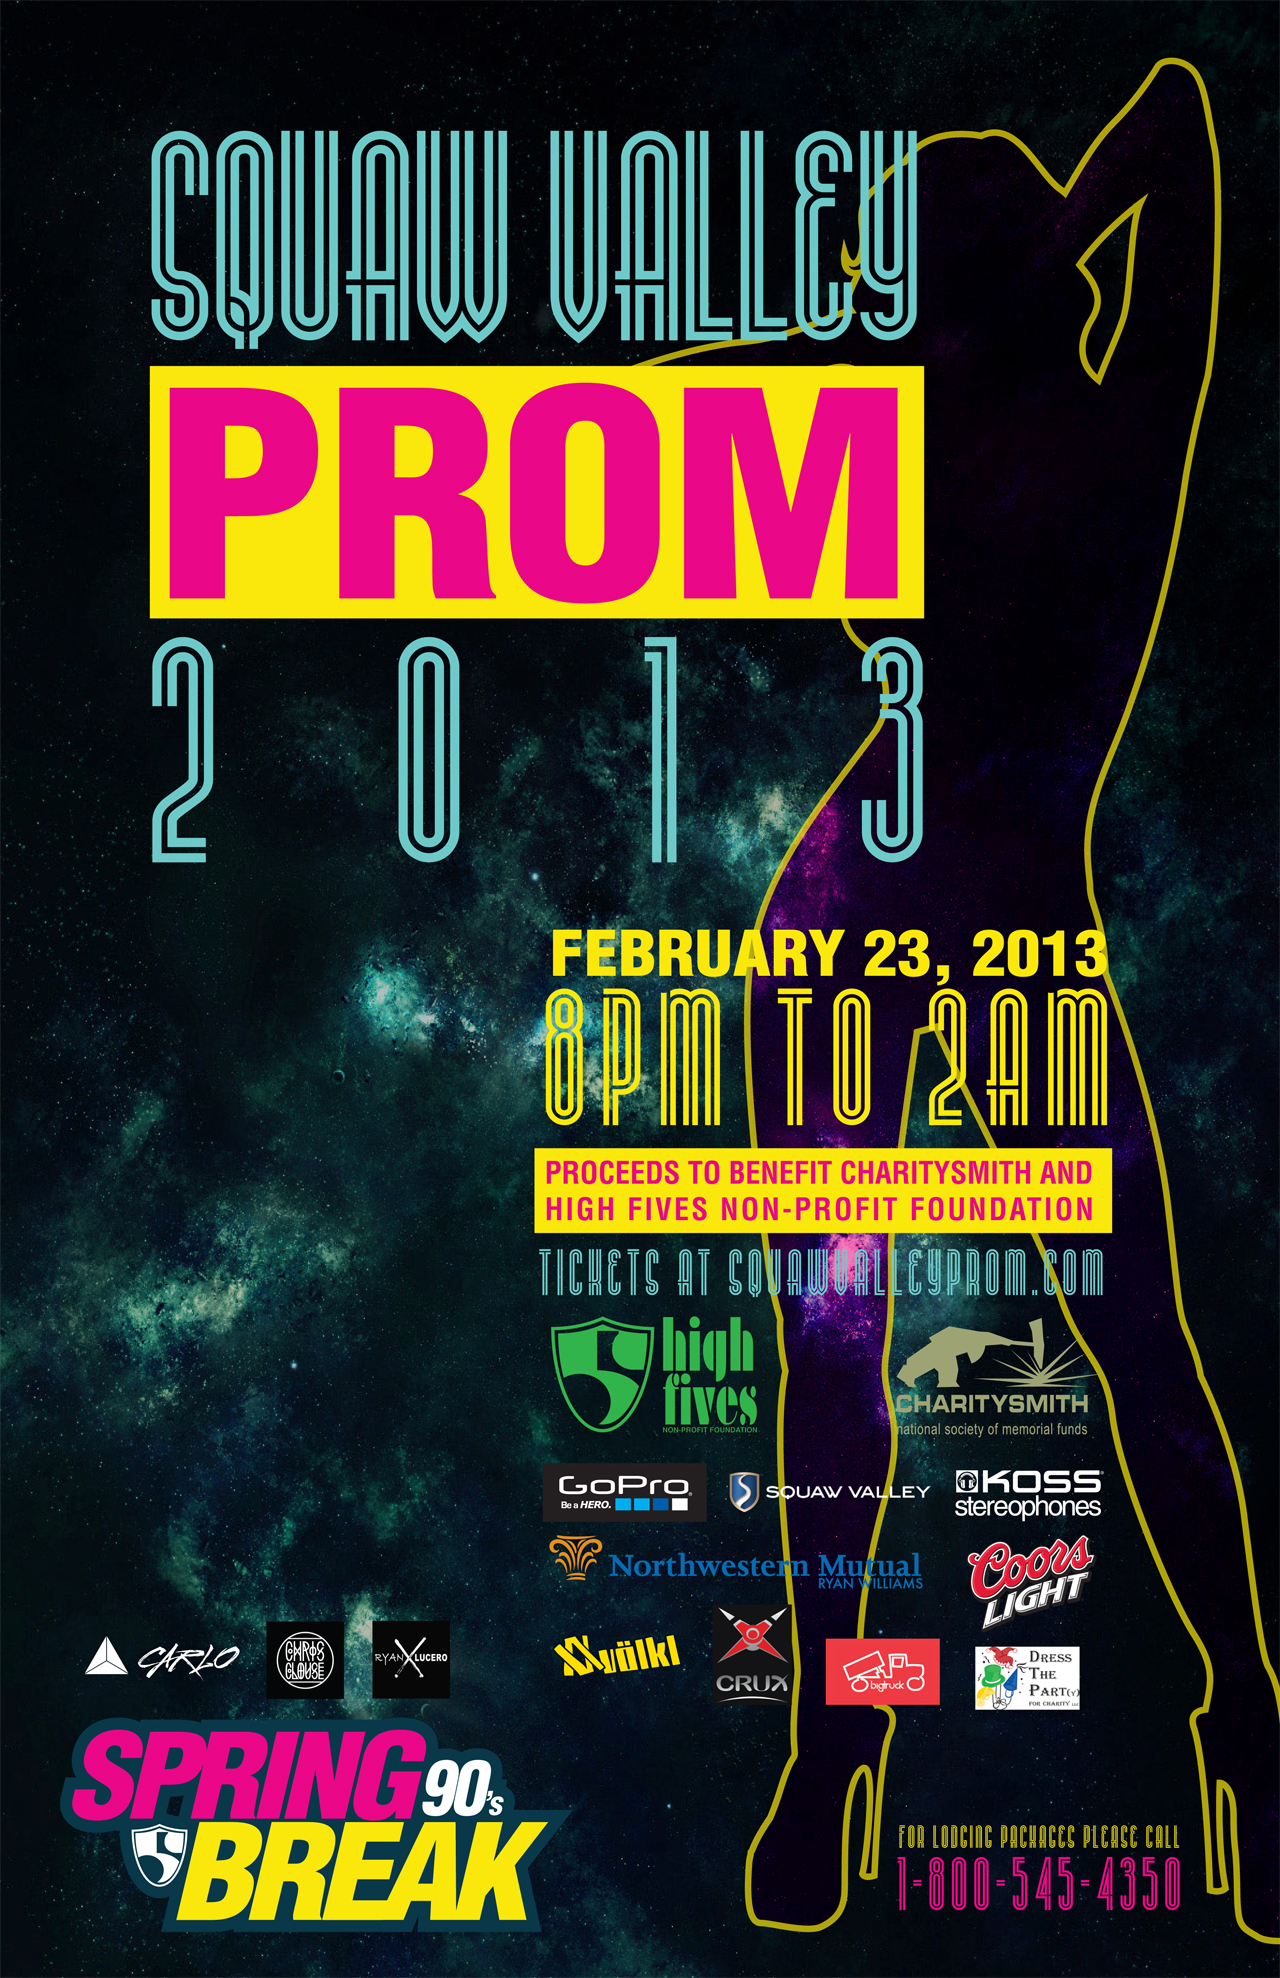 Squaw Valley Prom Flier